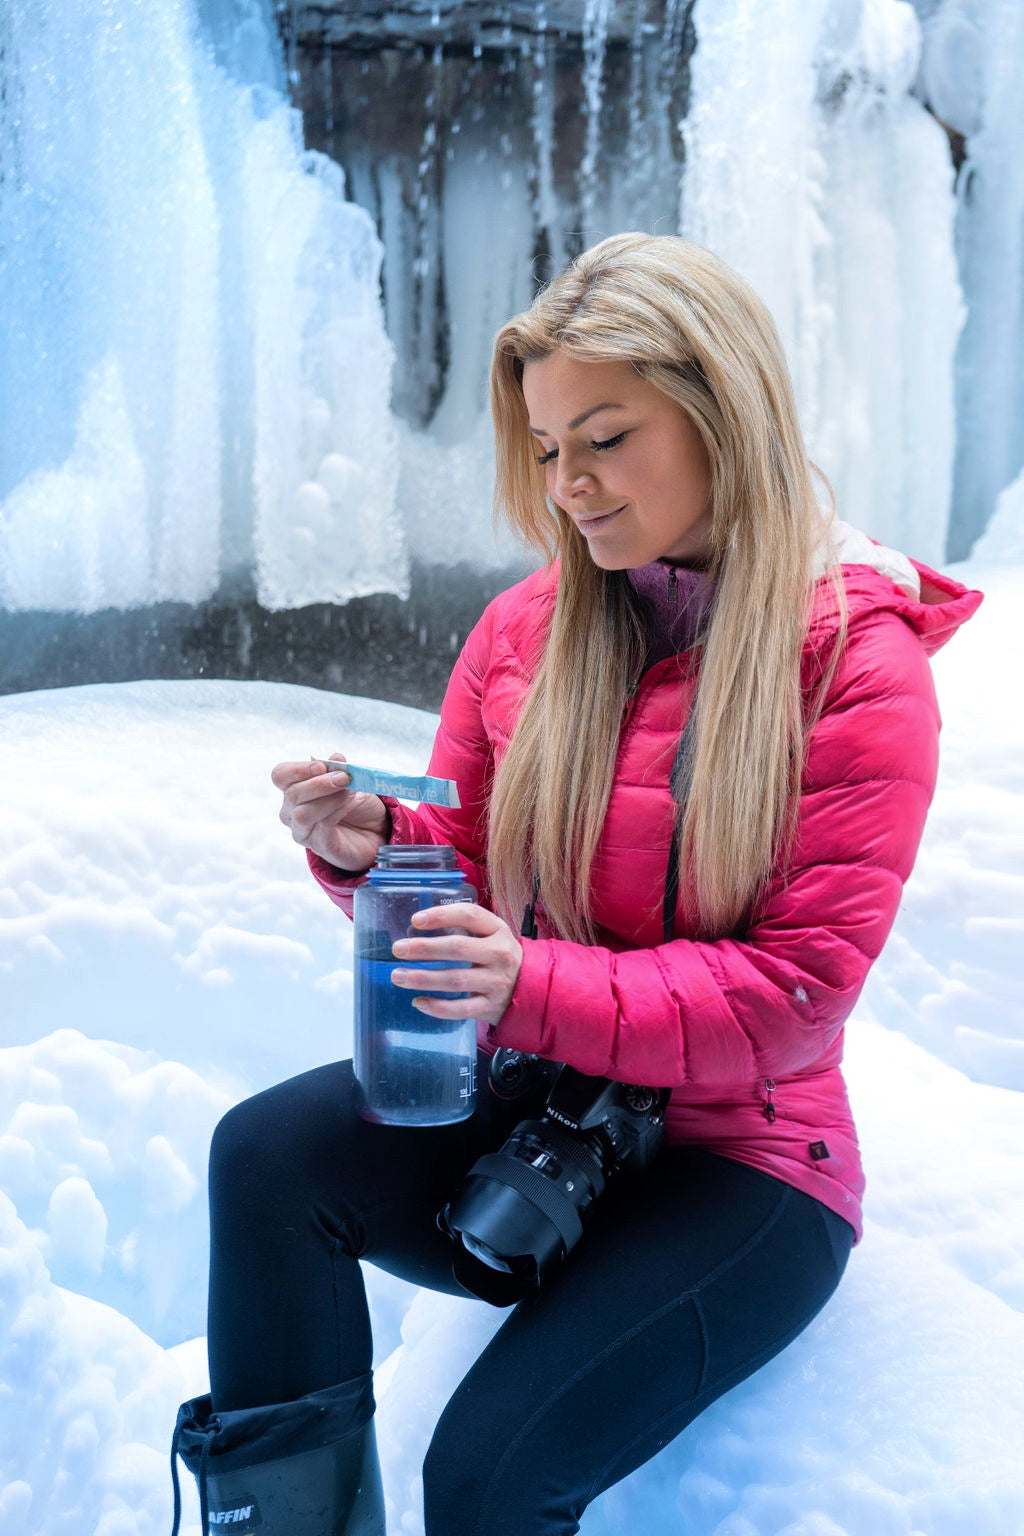 Stay hydrated while doing your favourite winter activities, such as exploring ice caves.